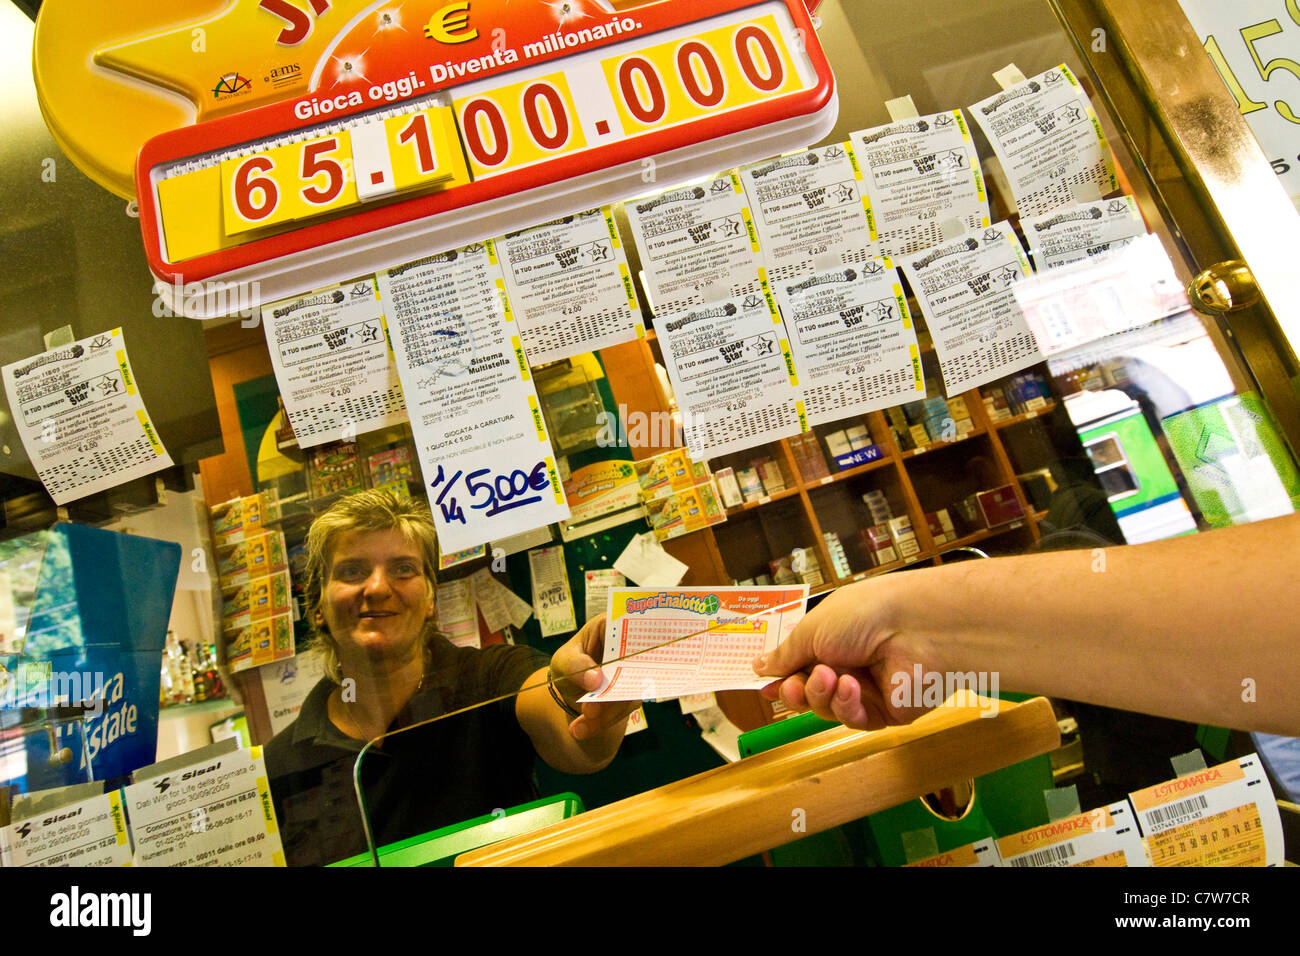 Superenalotto lottery - Stock Image